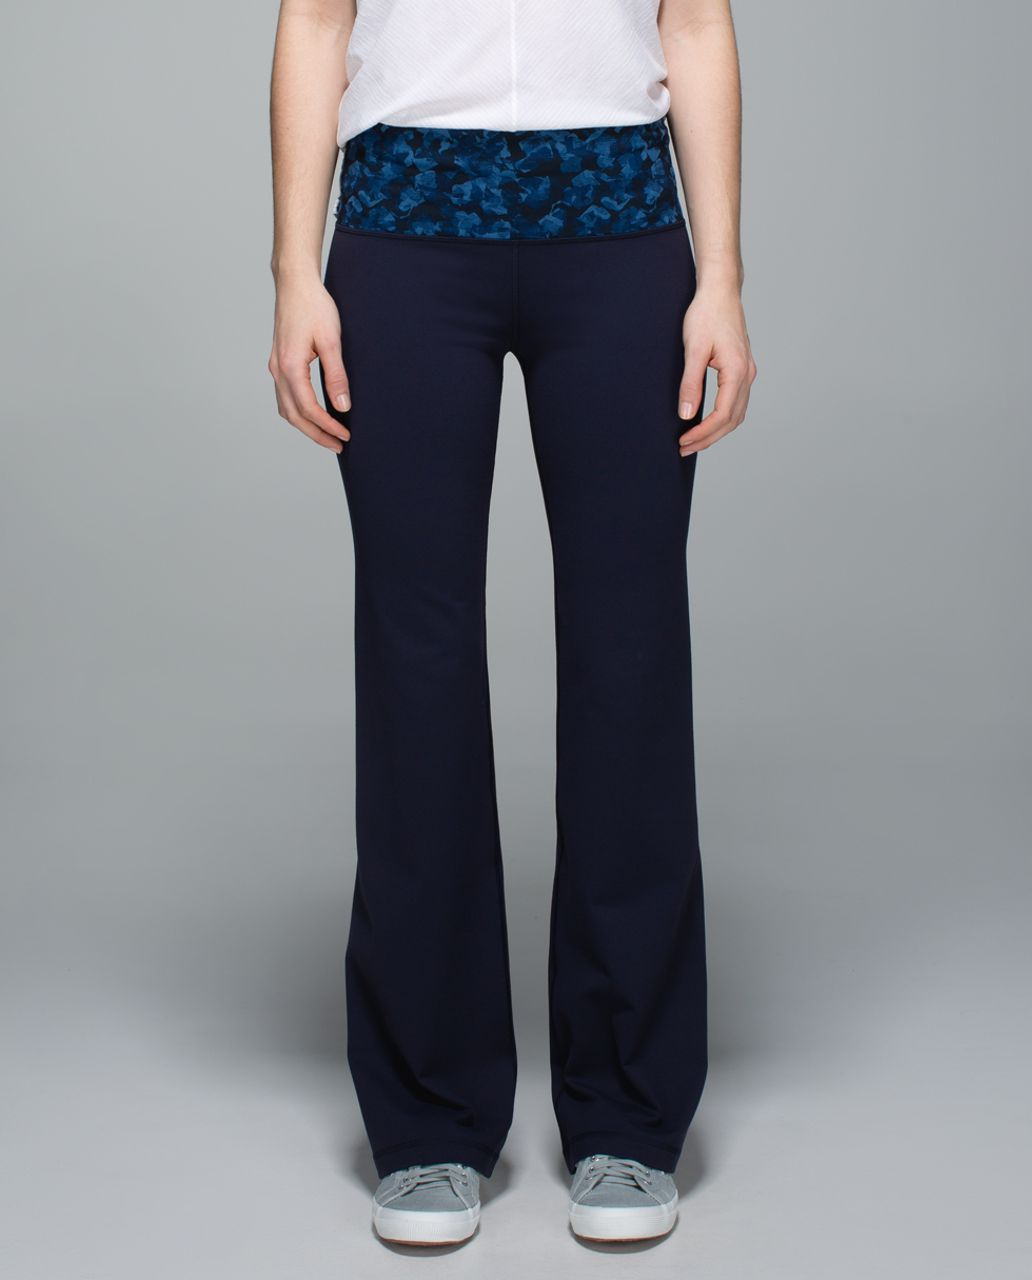 Lululemon Groove Pant II (Roll Down - Tall) - Naval Blue / Mystic Jungle Hawk Blue Harbor Blue